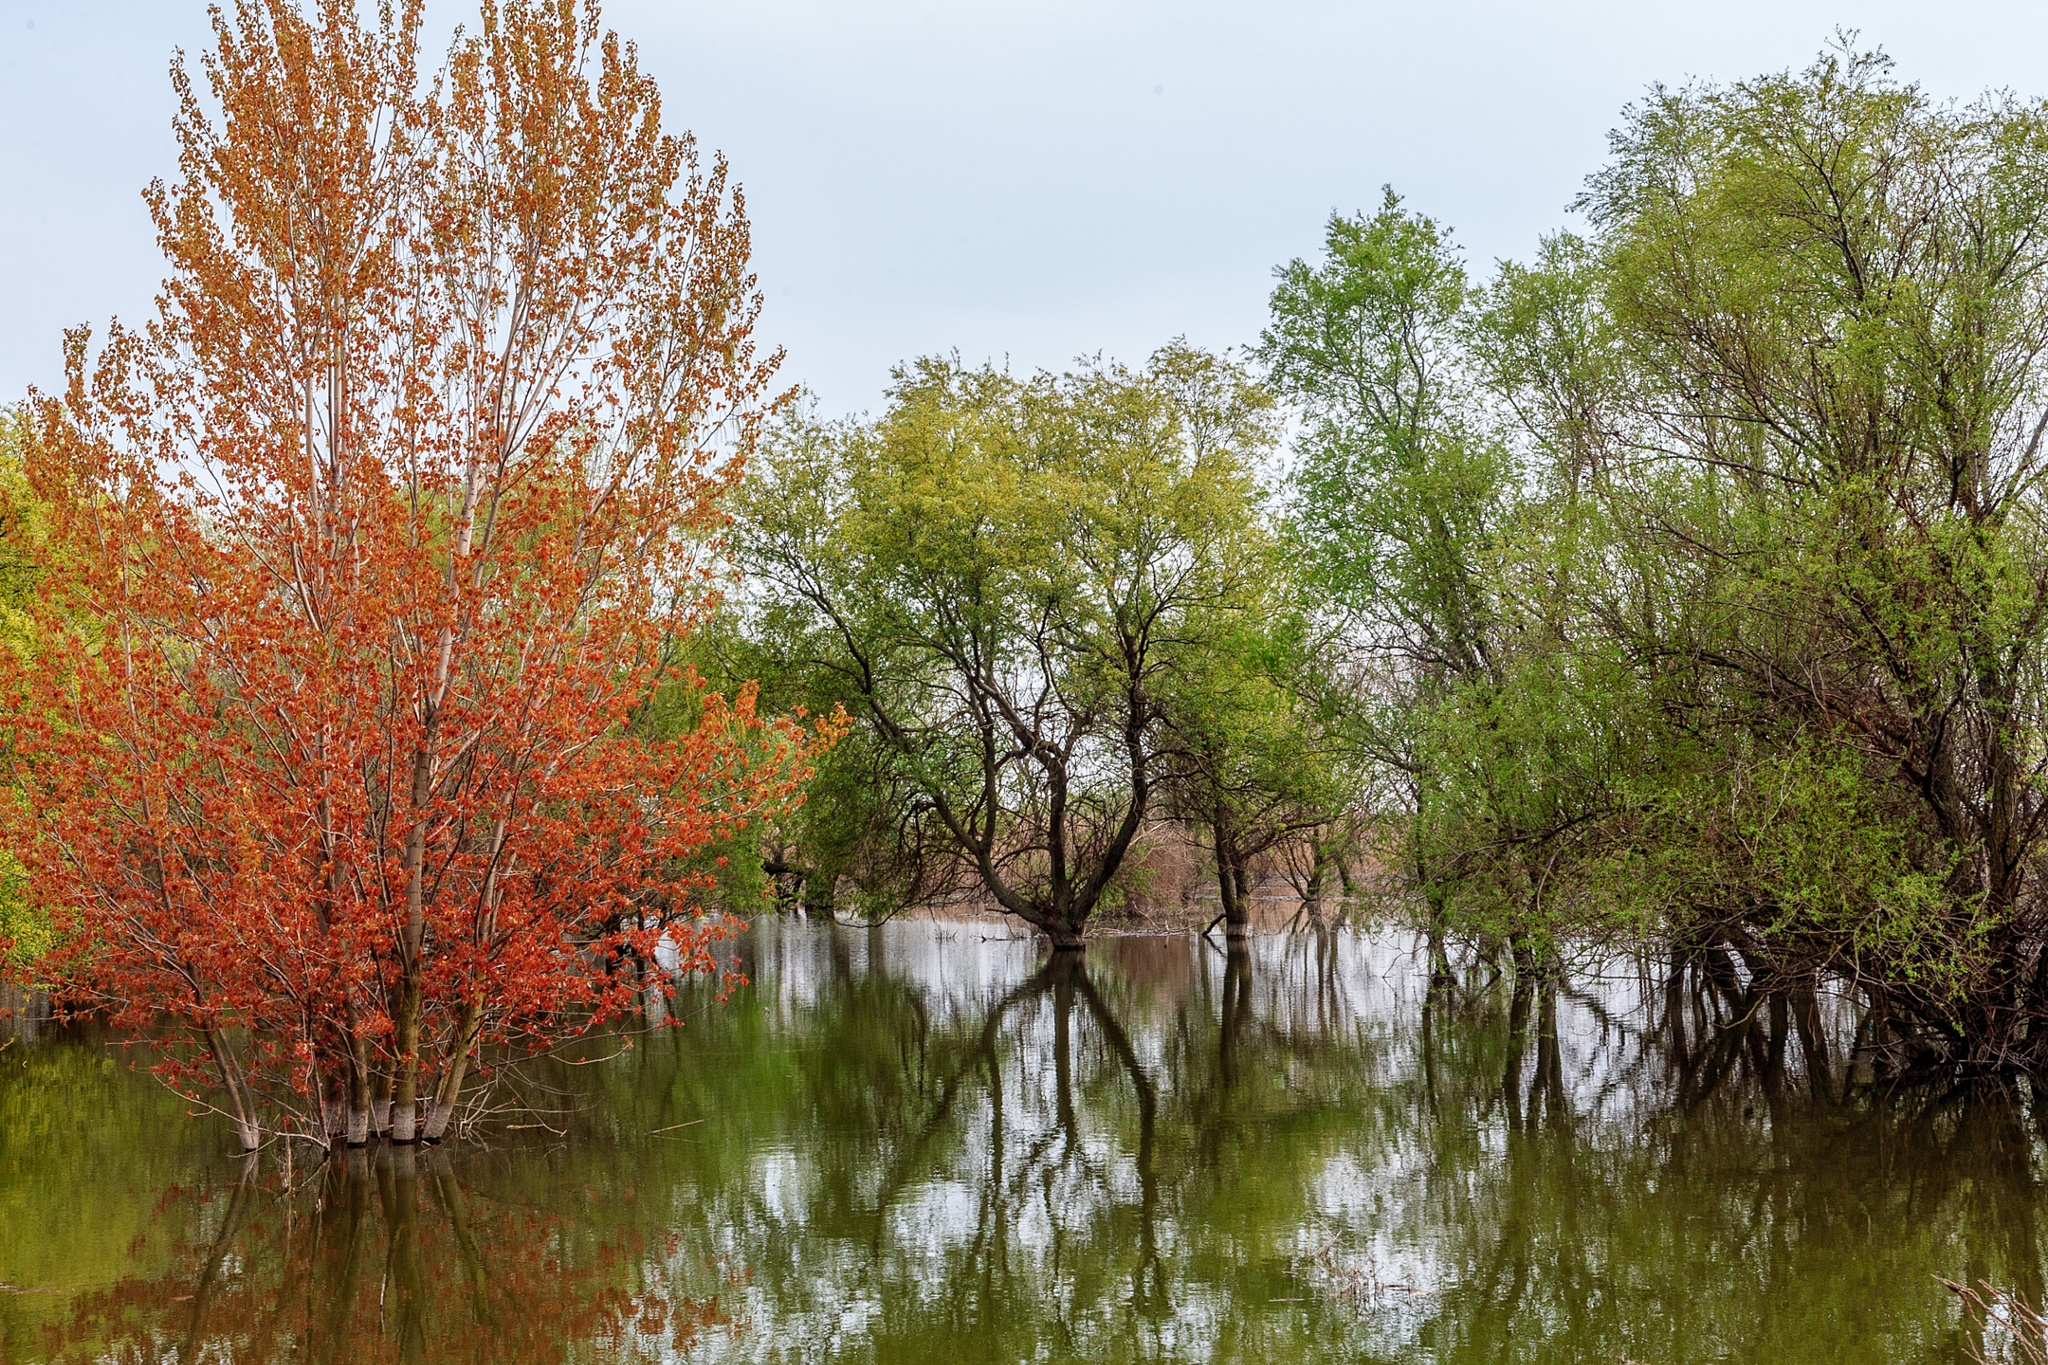 Trees in the lake by cenk sarvan